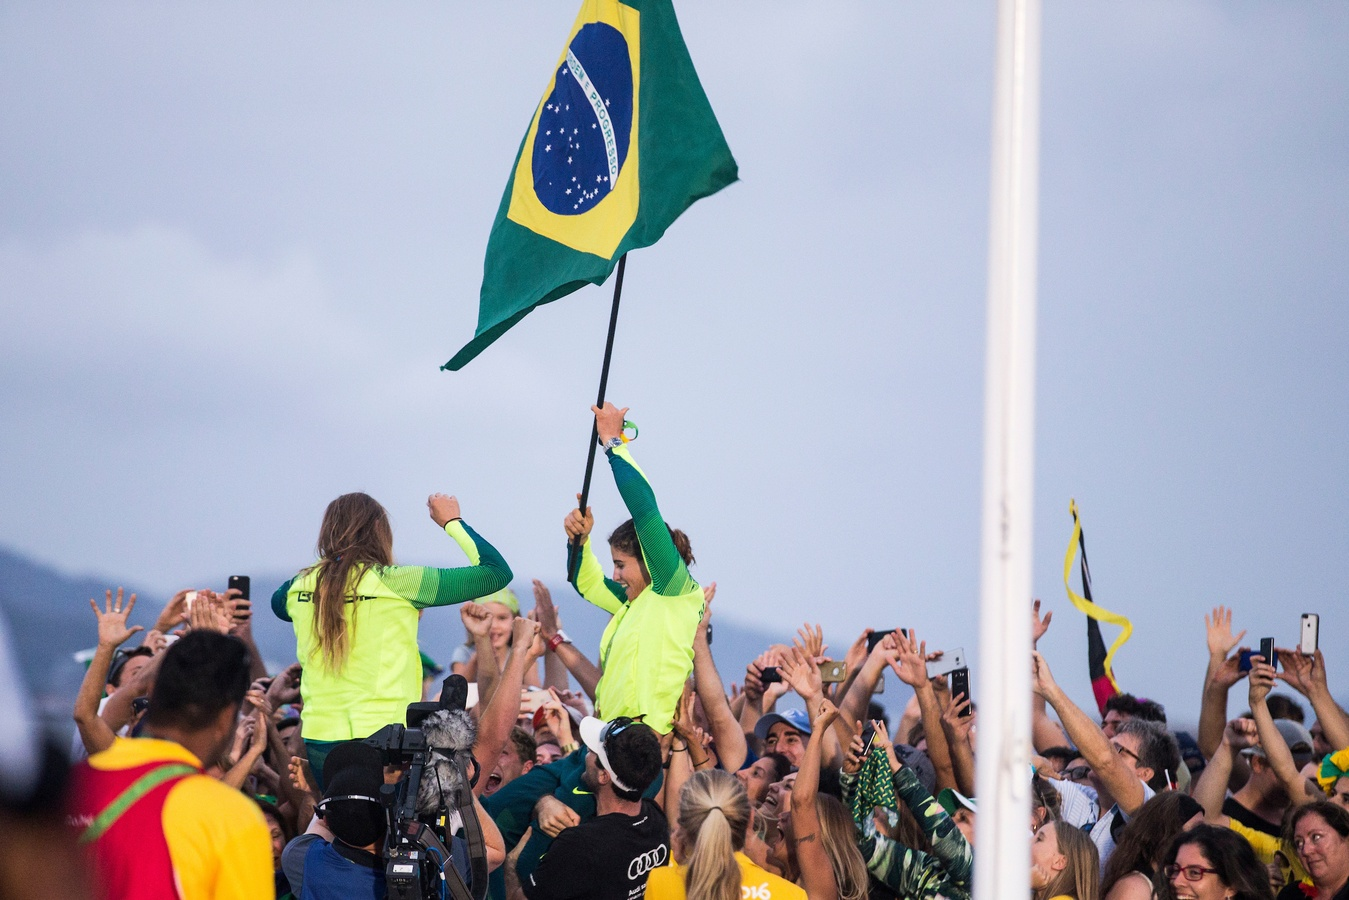 Brazil clinches 49erFX gold by just two seconds